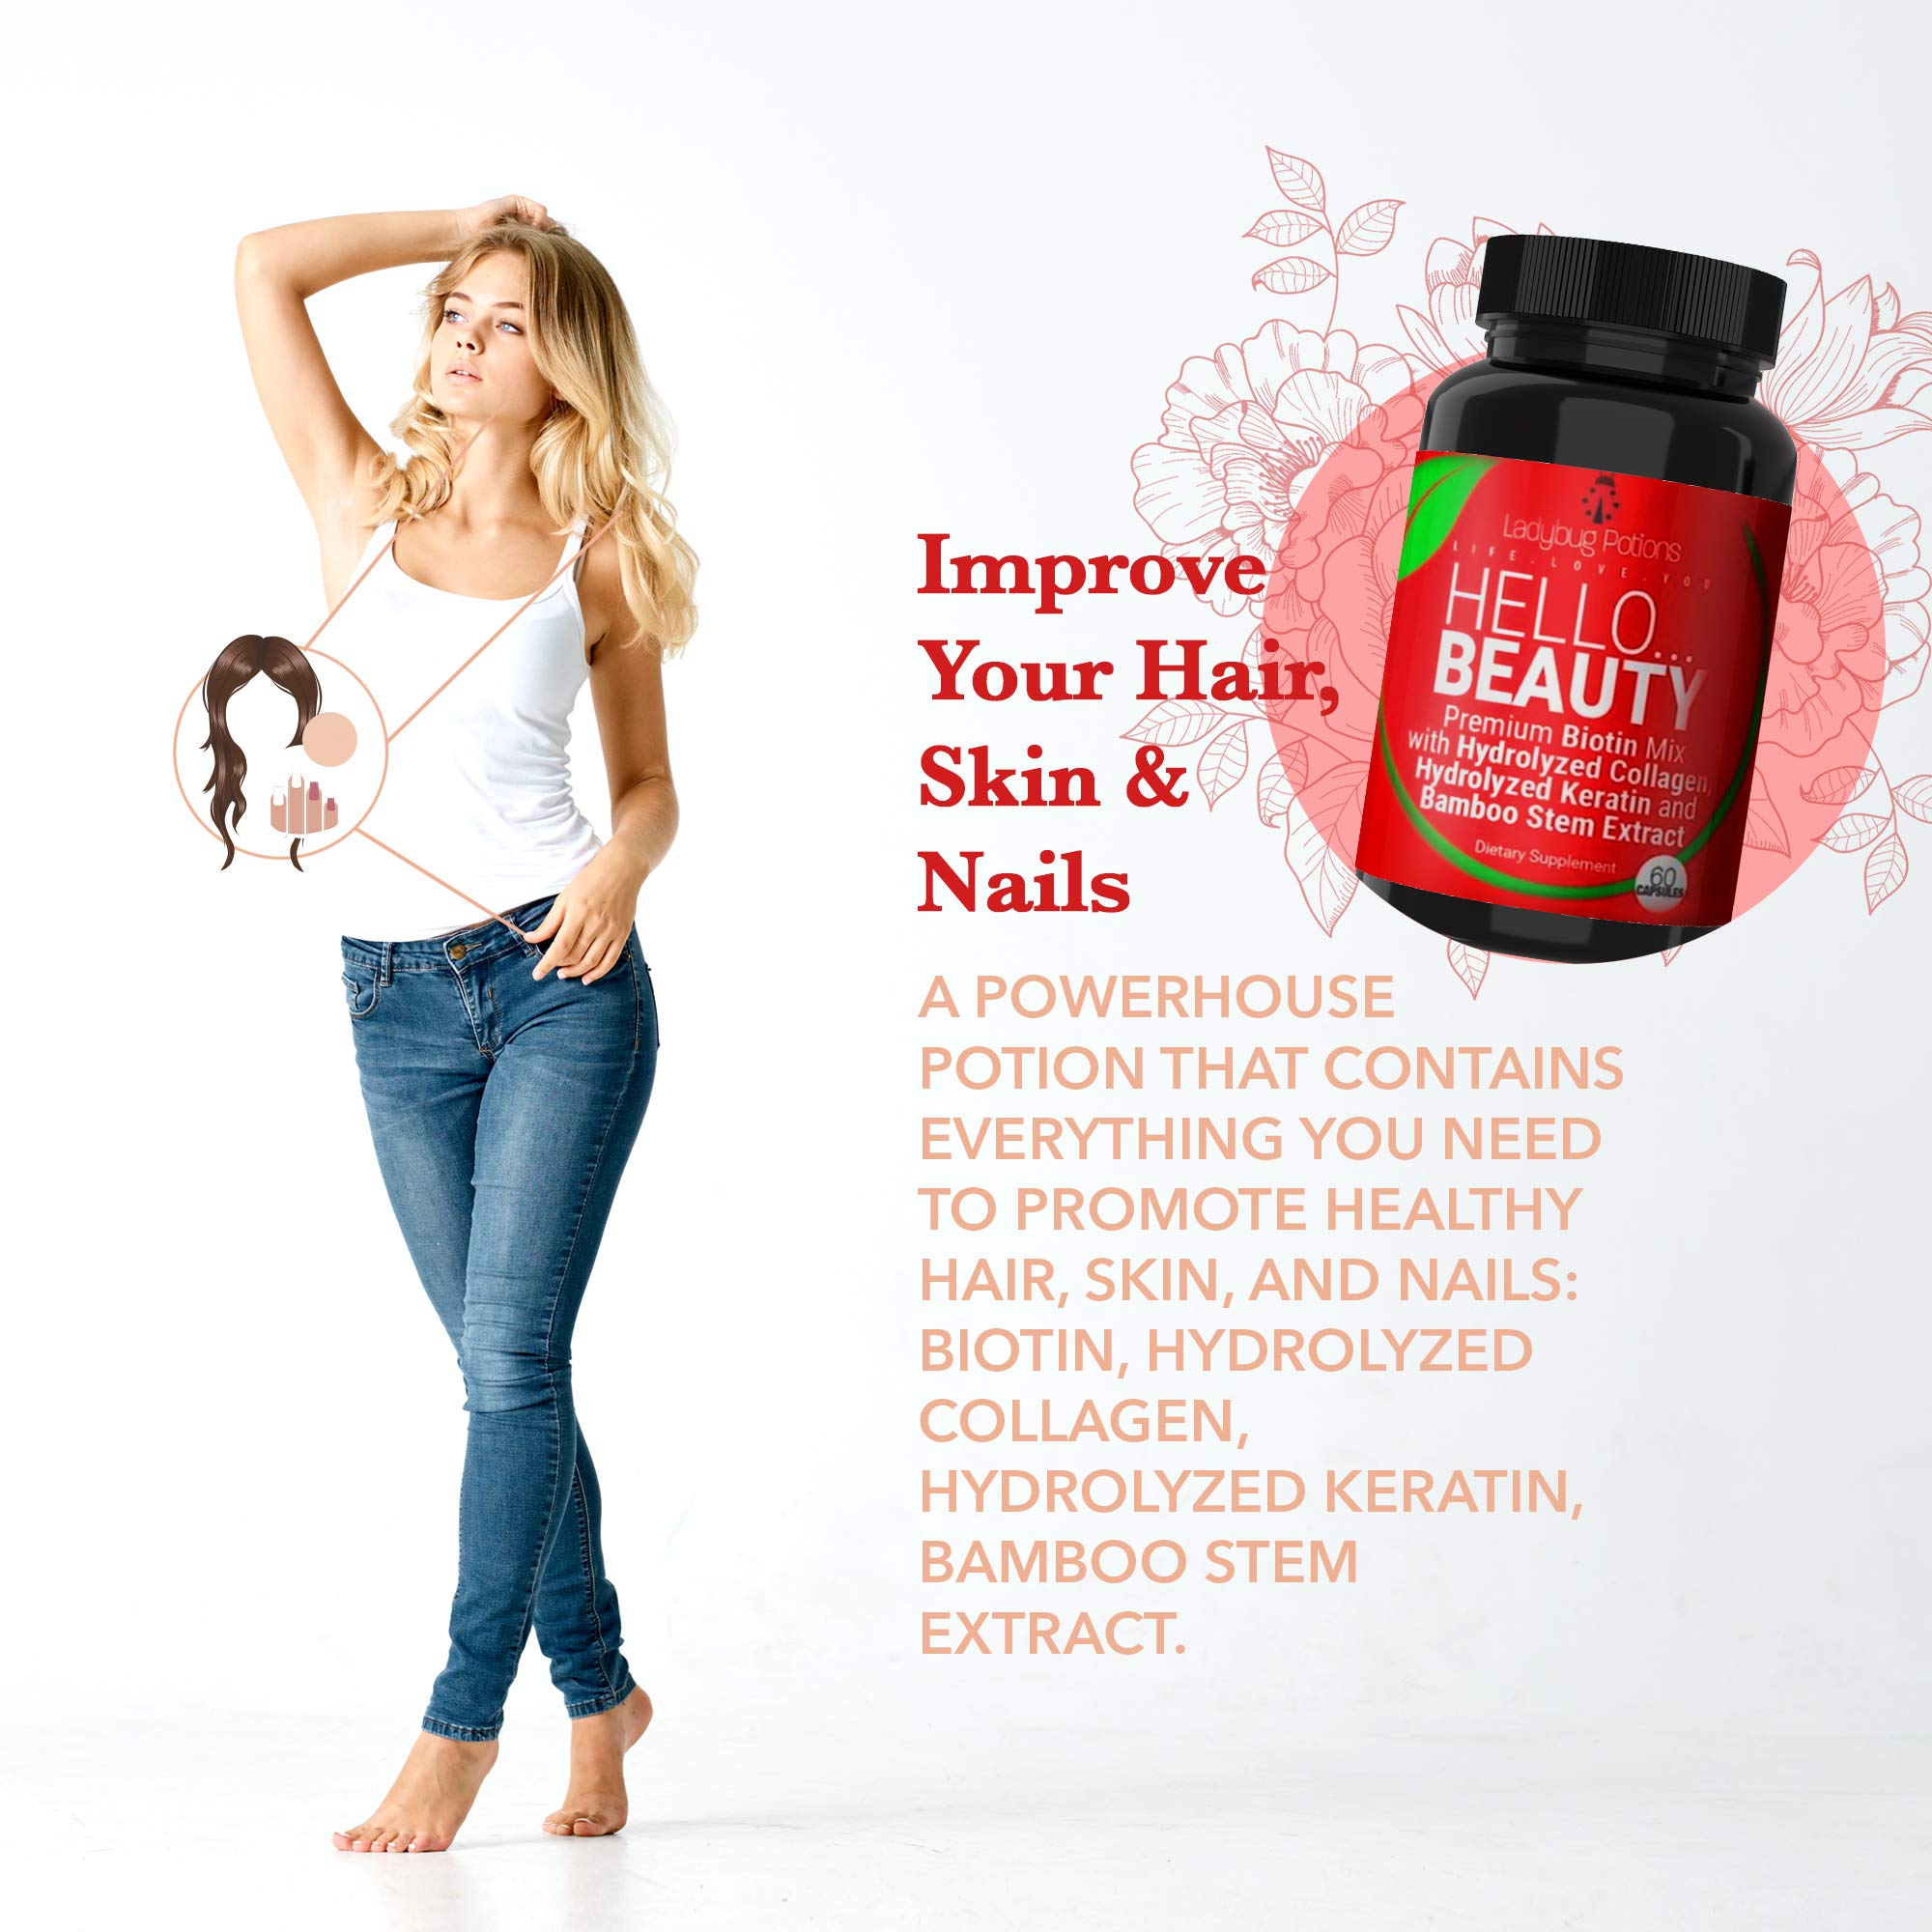 Hello Beauty Hair Vitamins for Faster Hair Growth, Biotin Vitamins for Hair Skin and Nails, Collagen Capsules with Vitamin A, Vitamin C, and Biotin 5000mcg - Ladybug Potions